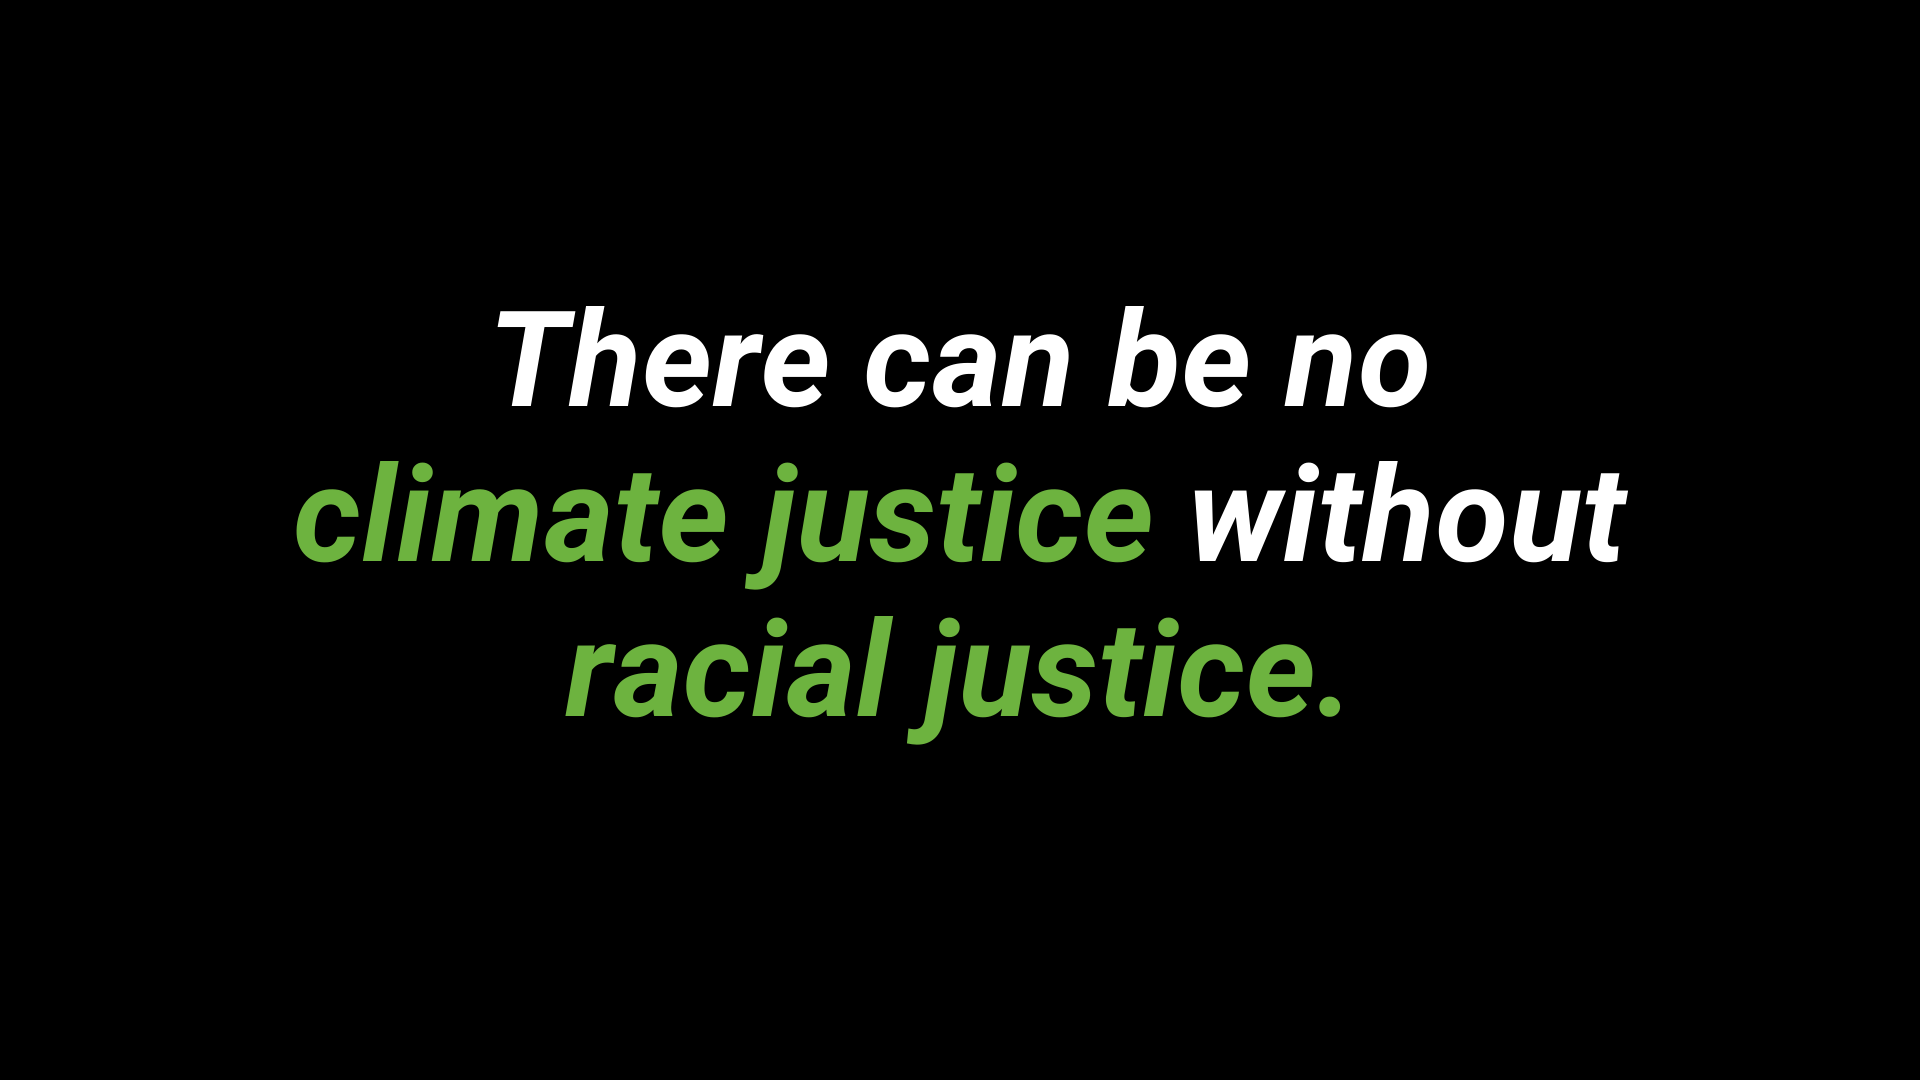 There can be no climate justice without racial justice.